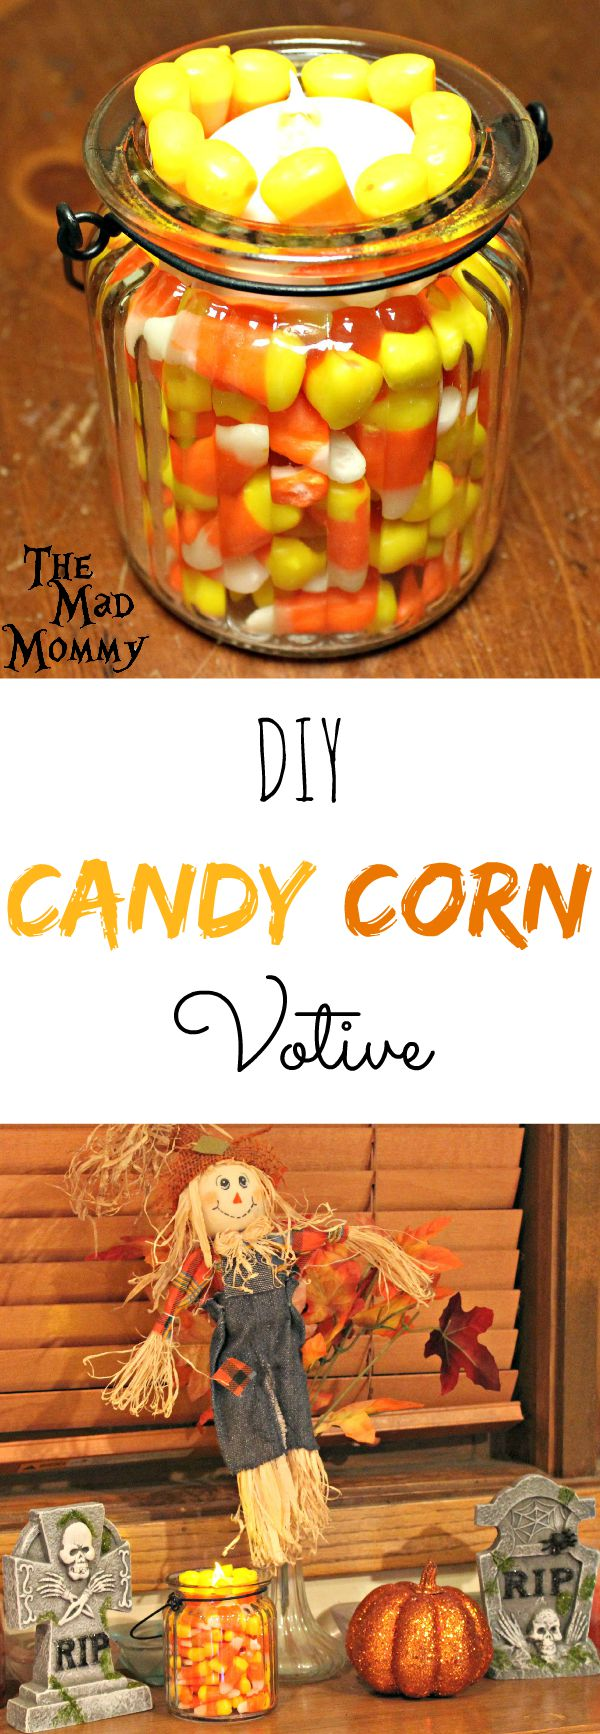 Add a little Halloween Flair to your fall decor with this super cute, but super simple DIY Candy Corn Votive!